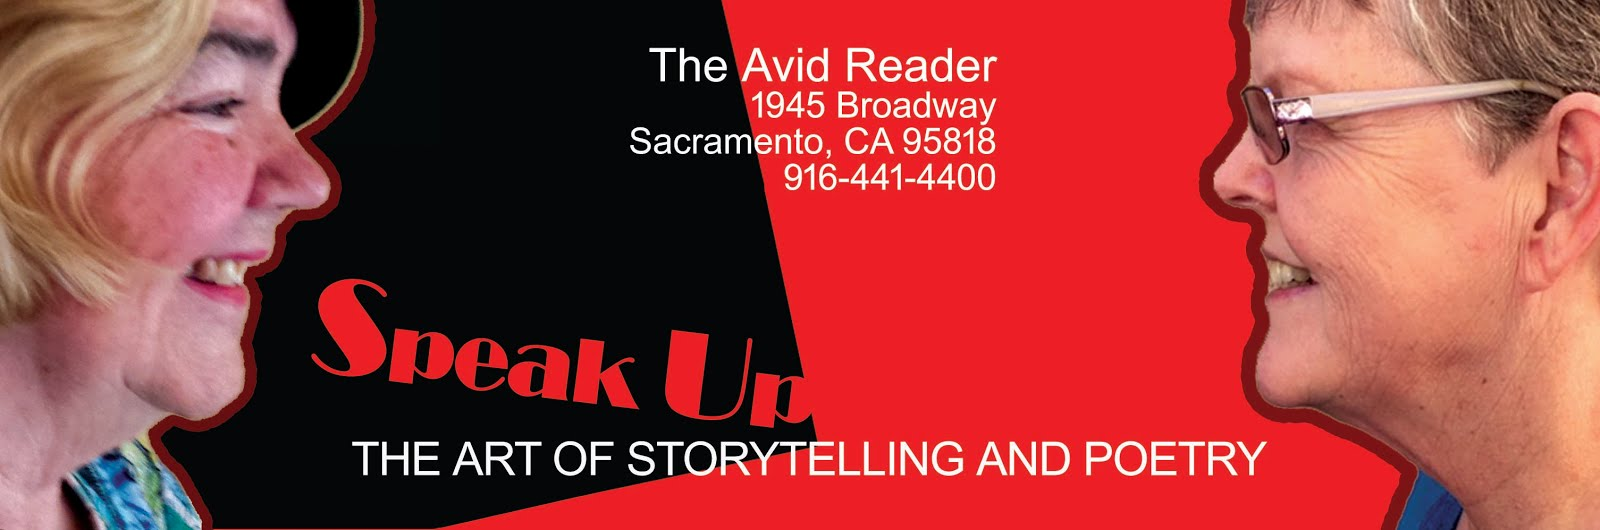 SPEAK UP STORYTELLING & POETRY in Sac. Fri. (4/27)